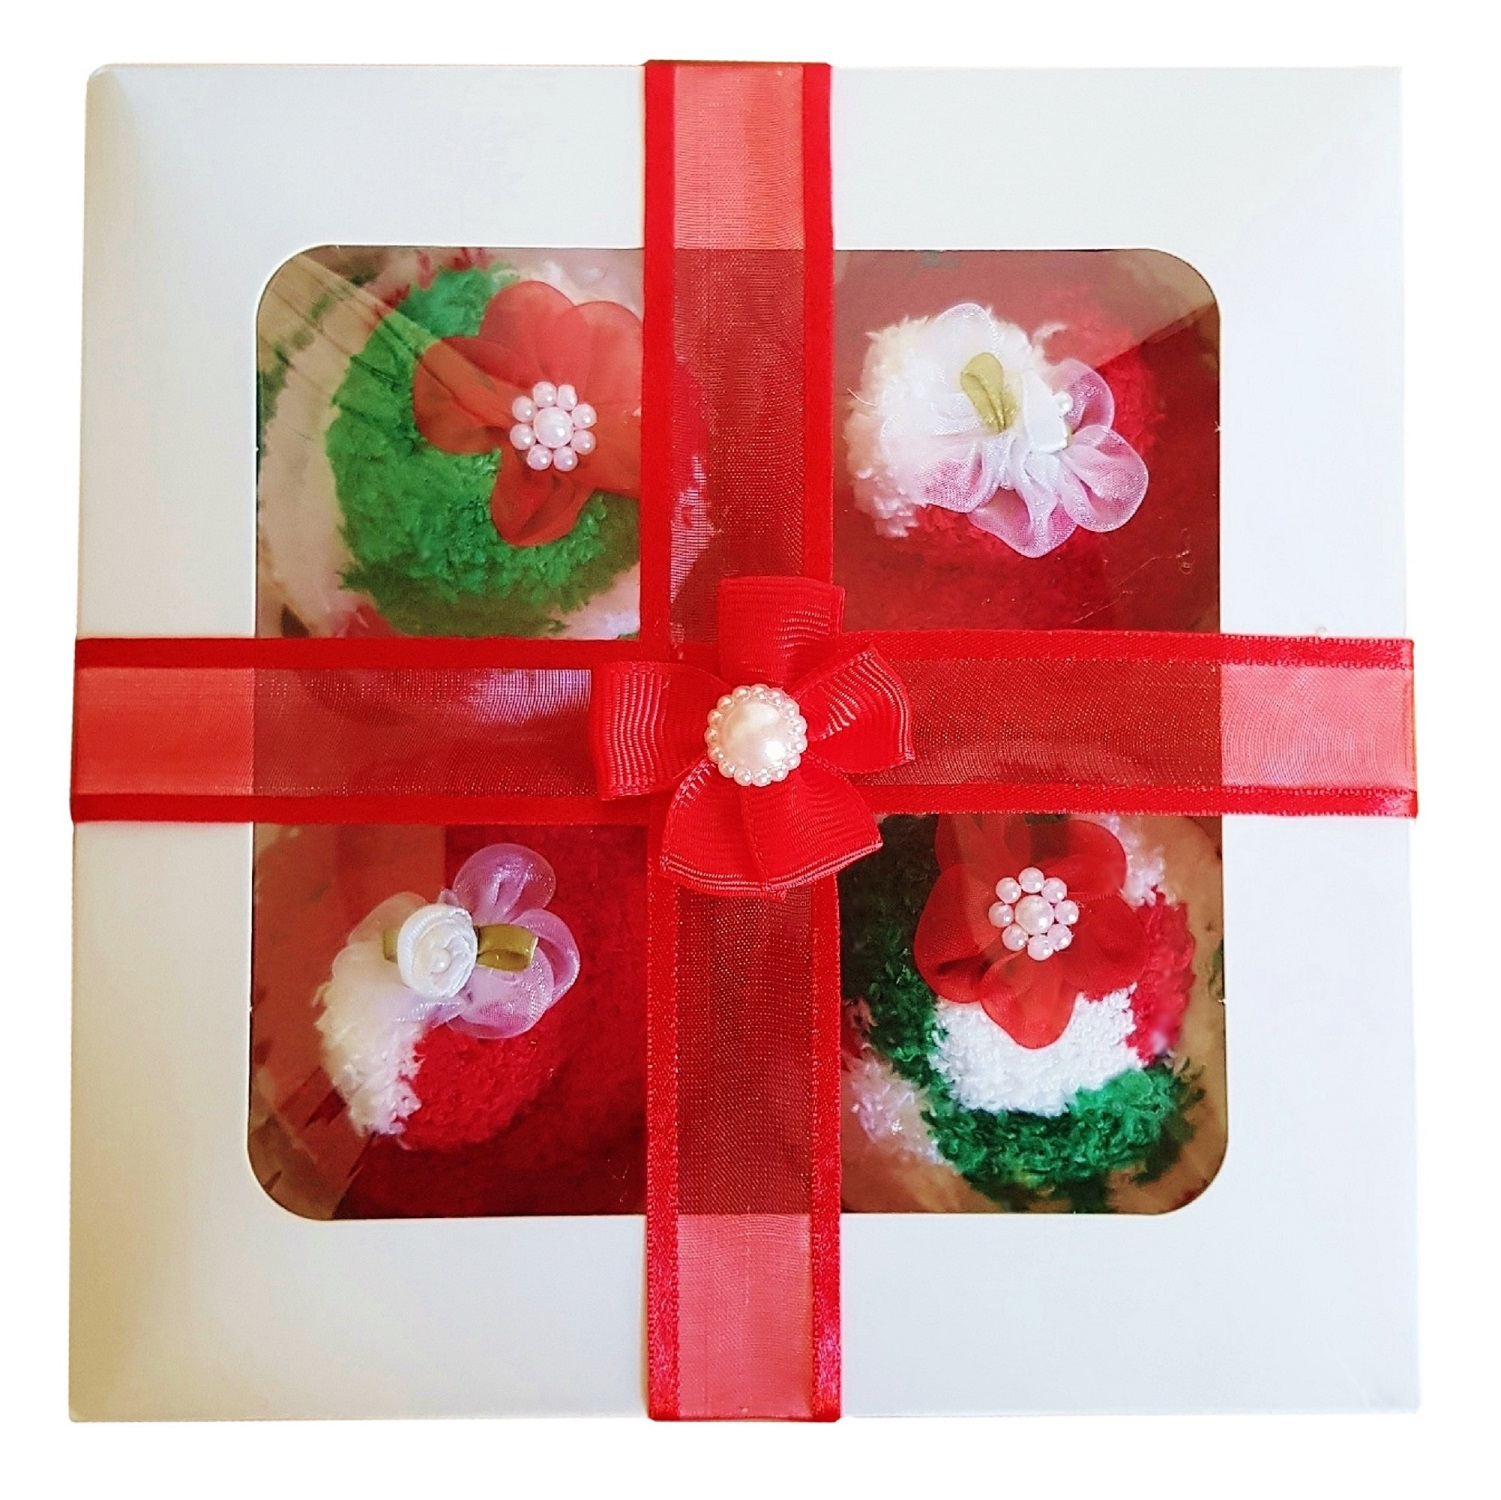 Women's ' Christmas Cozy Sock' Cupcakes, Red Ribbon Gift Box *ON SALE*